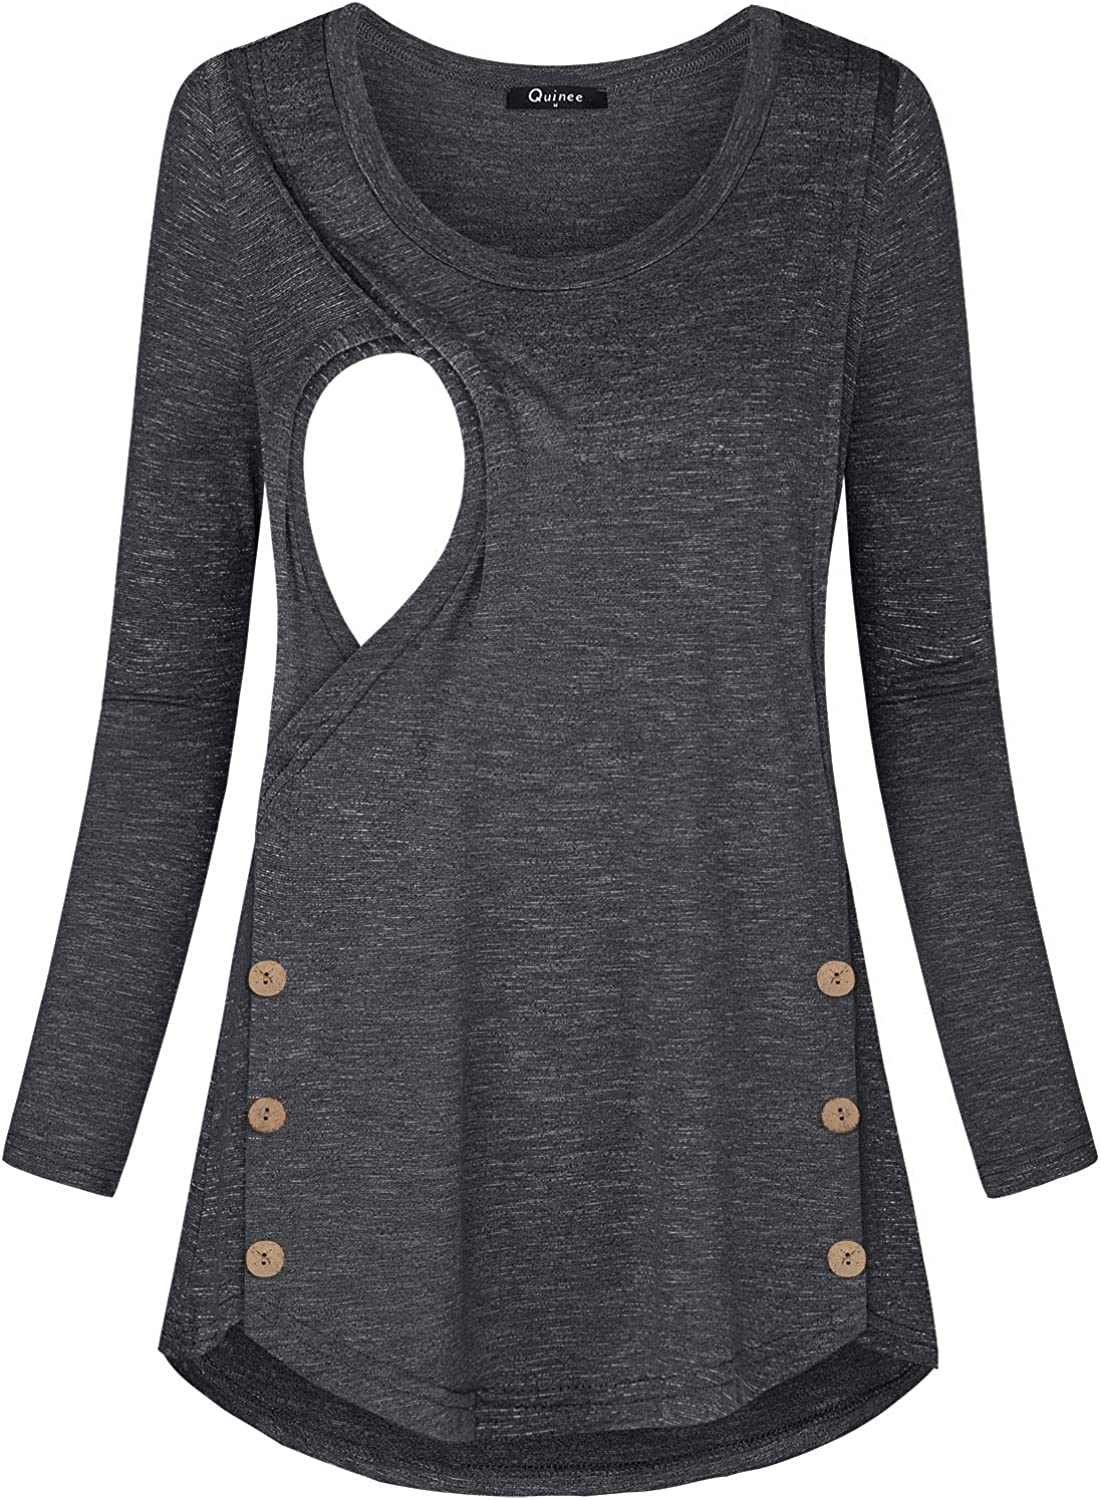 Quinee Women's Button Side Maternity Tunic Nursing Tops for Breastfeeding